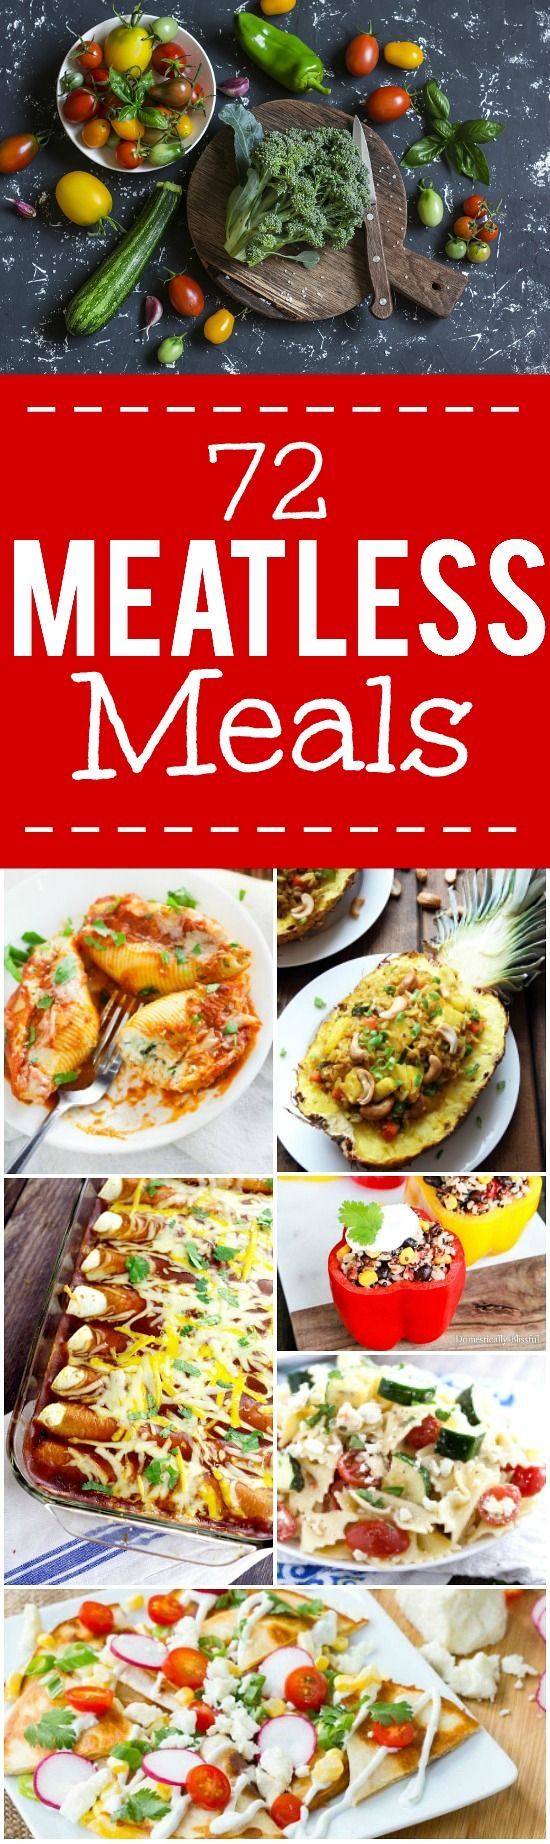 72 Meatless Recipe Ideas - 72 of the best Meatless Monday recipes that are family friendly, simple and easy vegetarian recipes. Making just one vegetarian dinner every week can help save on grocery costs too!